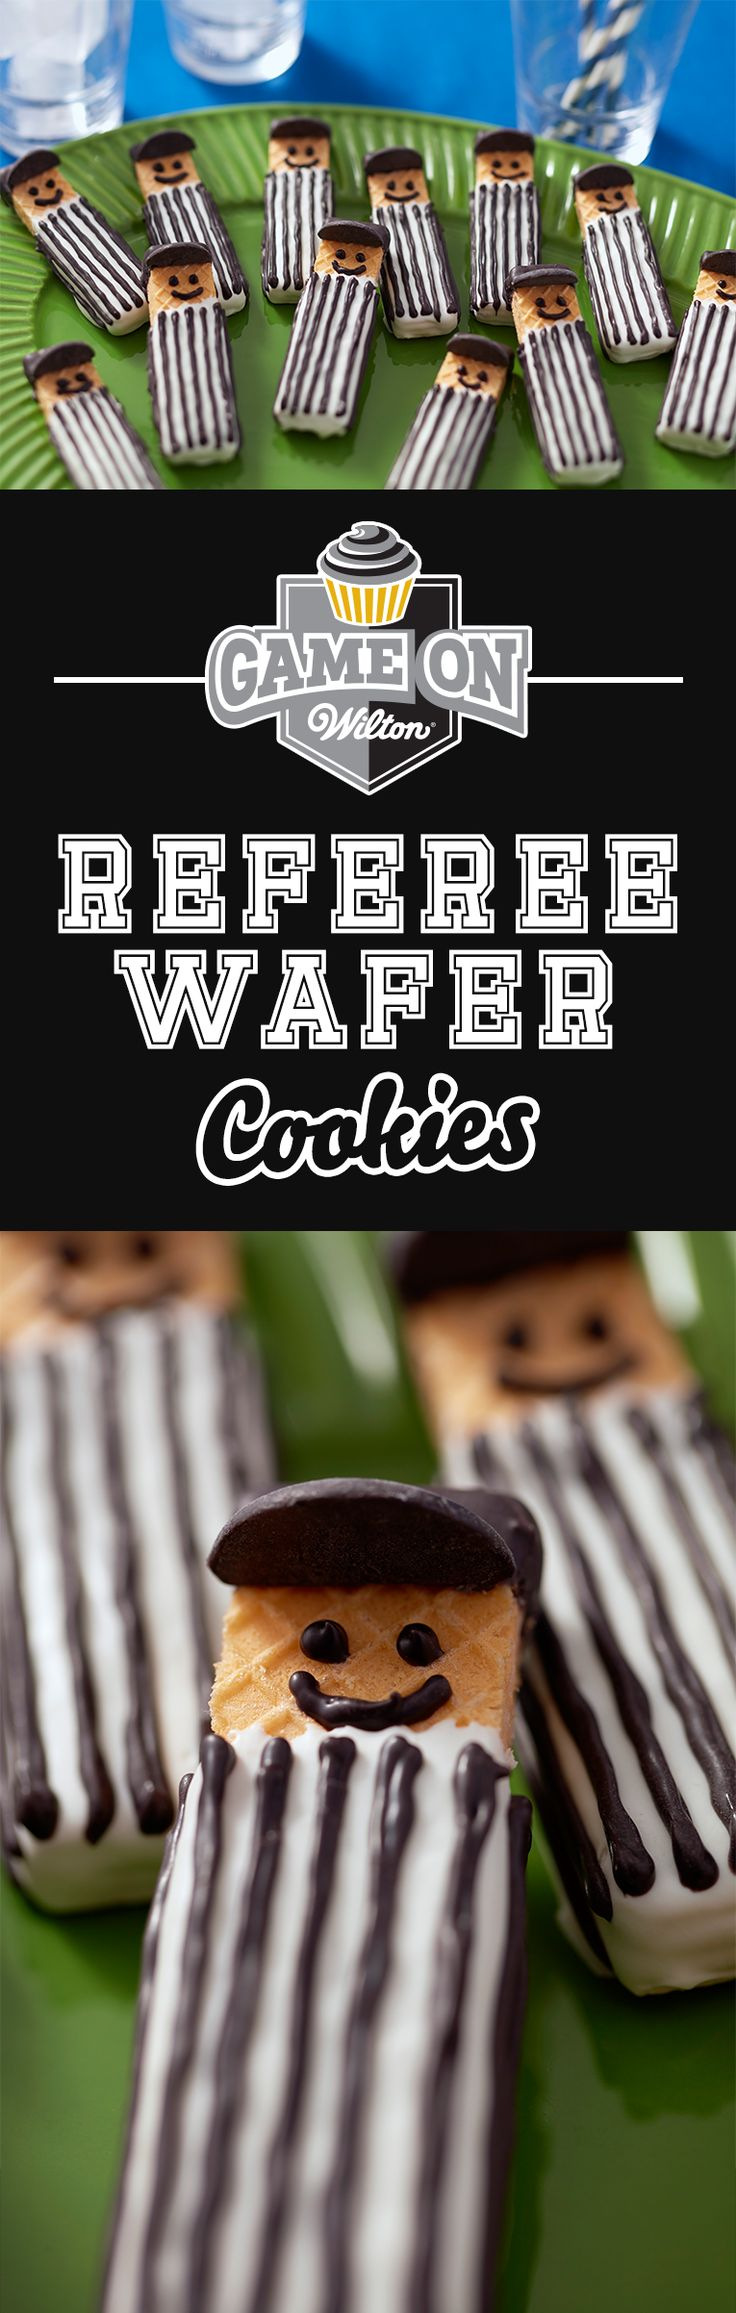 Easy Referee Wafer Cookies - These referee wafer cookies will be the best call of the game! Make them for any youth football team treat, tailgating party or just to impress your guests while watching the game at home. Sweet wafer cookies with Candy Melts candy are an easy-to-make treat that taste great, too!